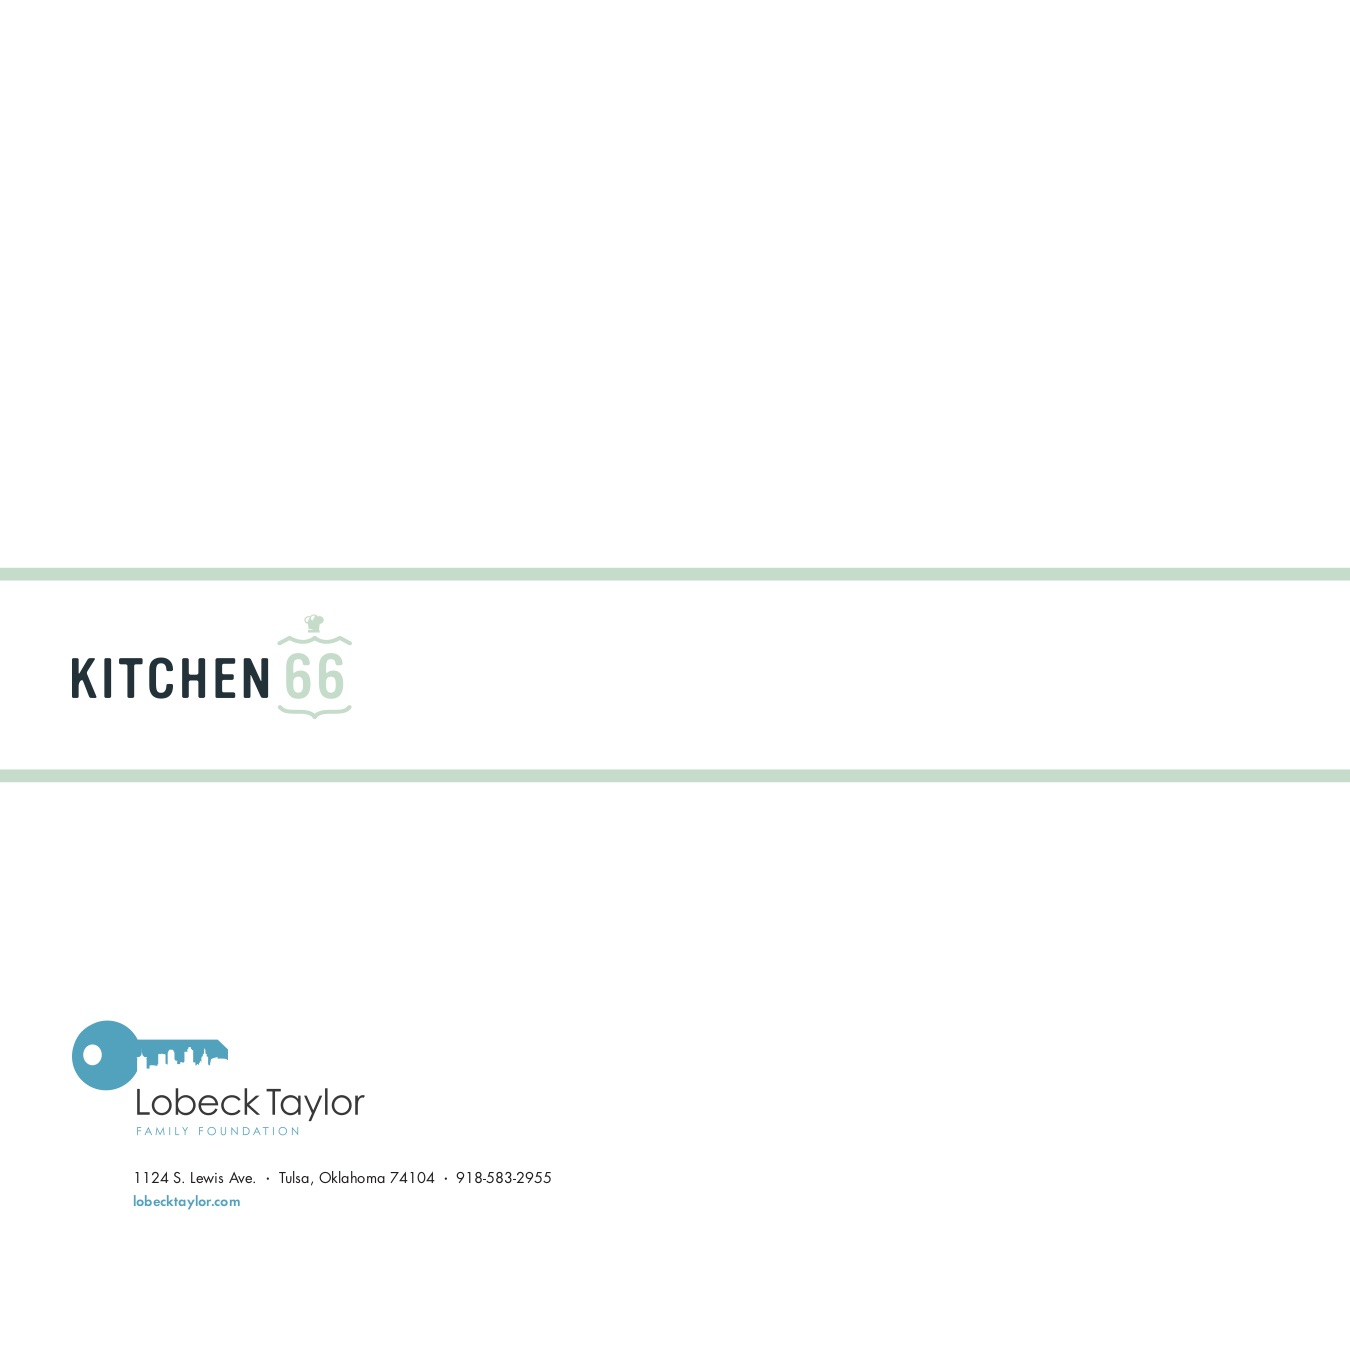 2018 Kitchen 66 Impact Report (16).jpg